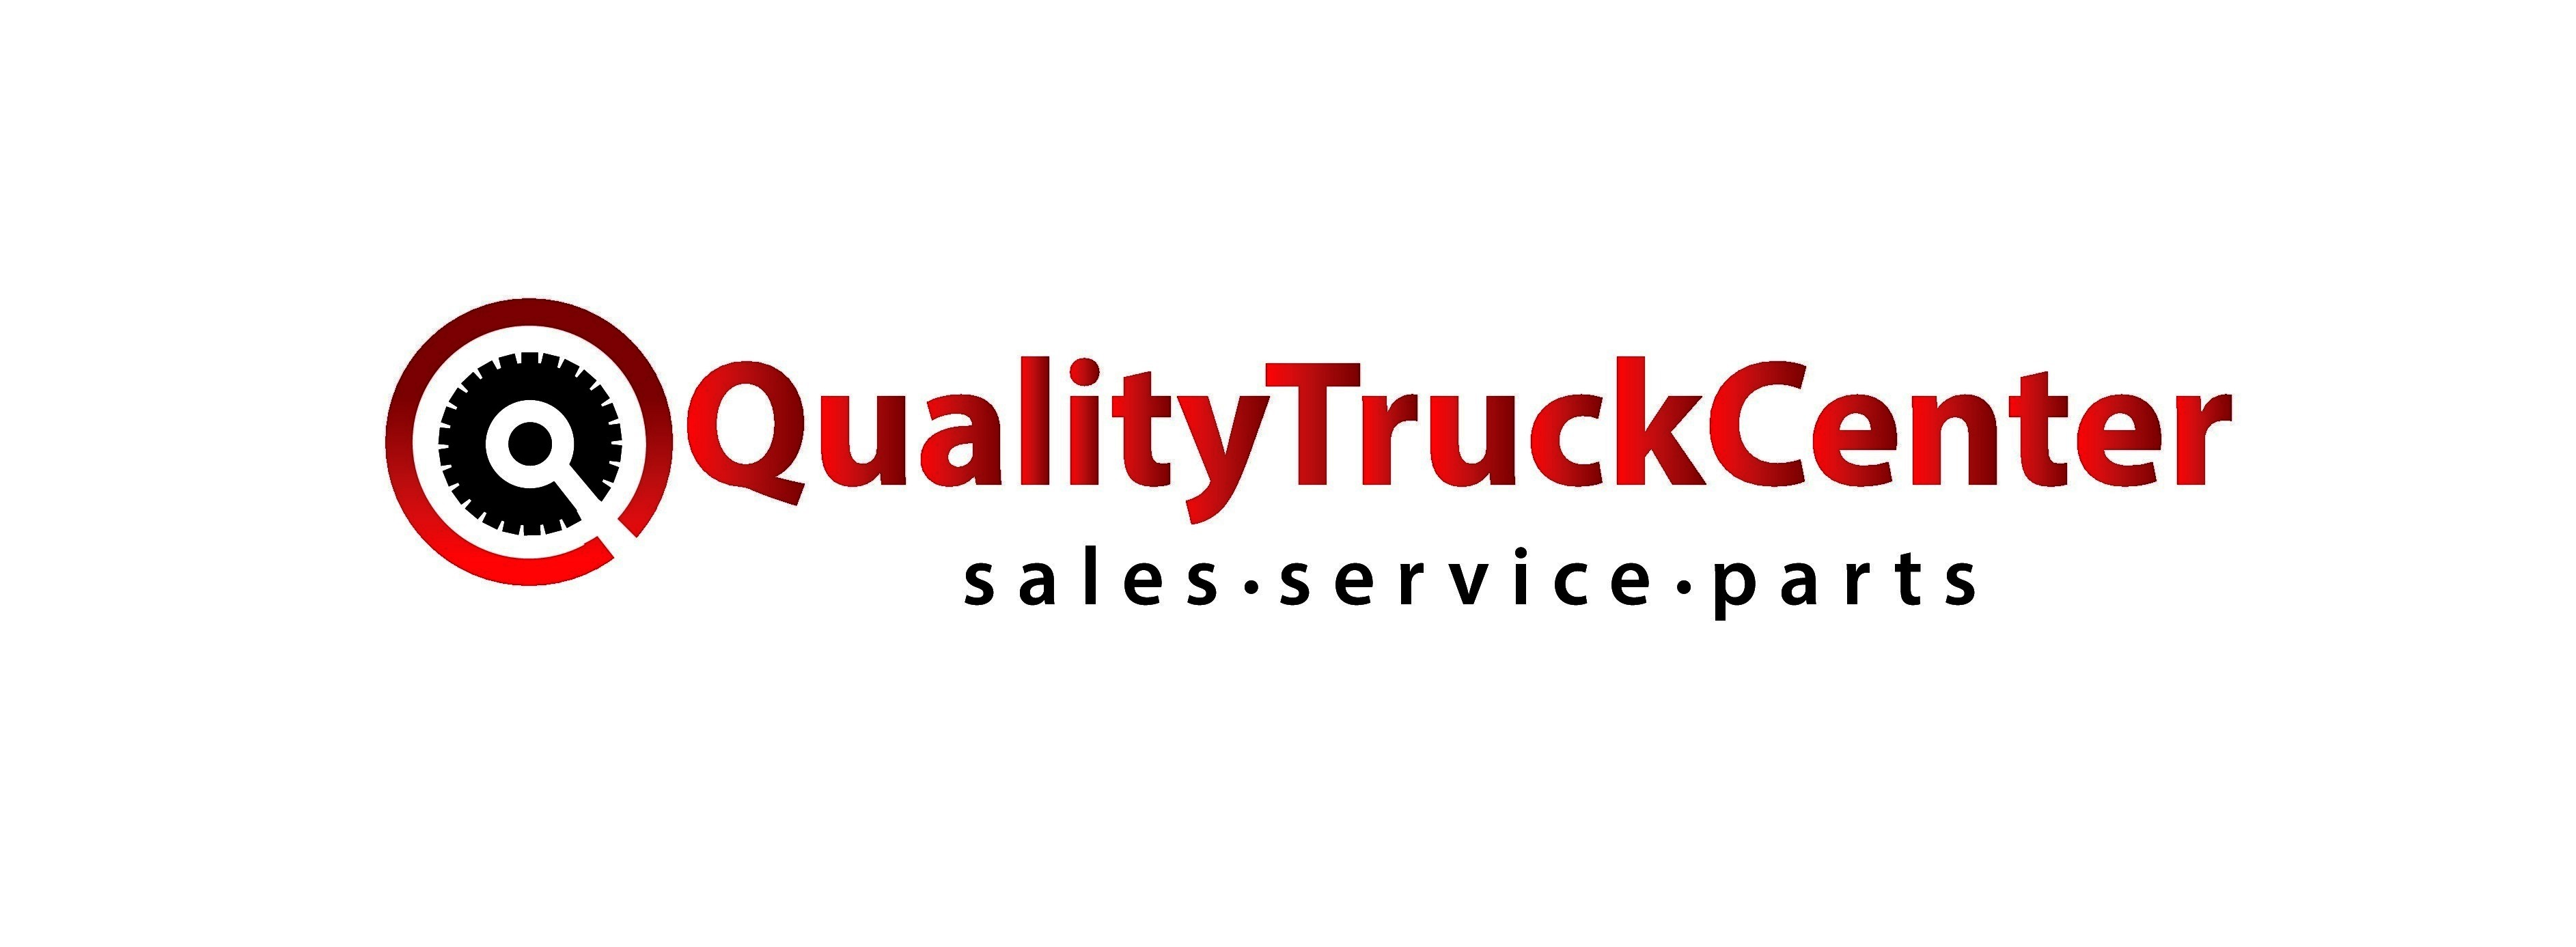 Quality Truck Center